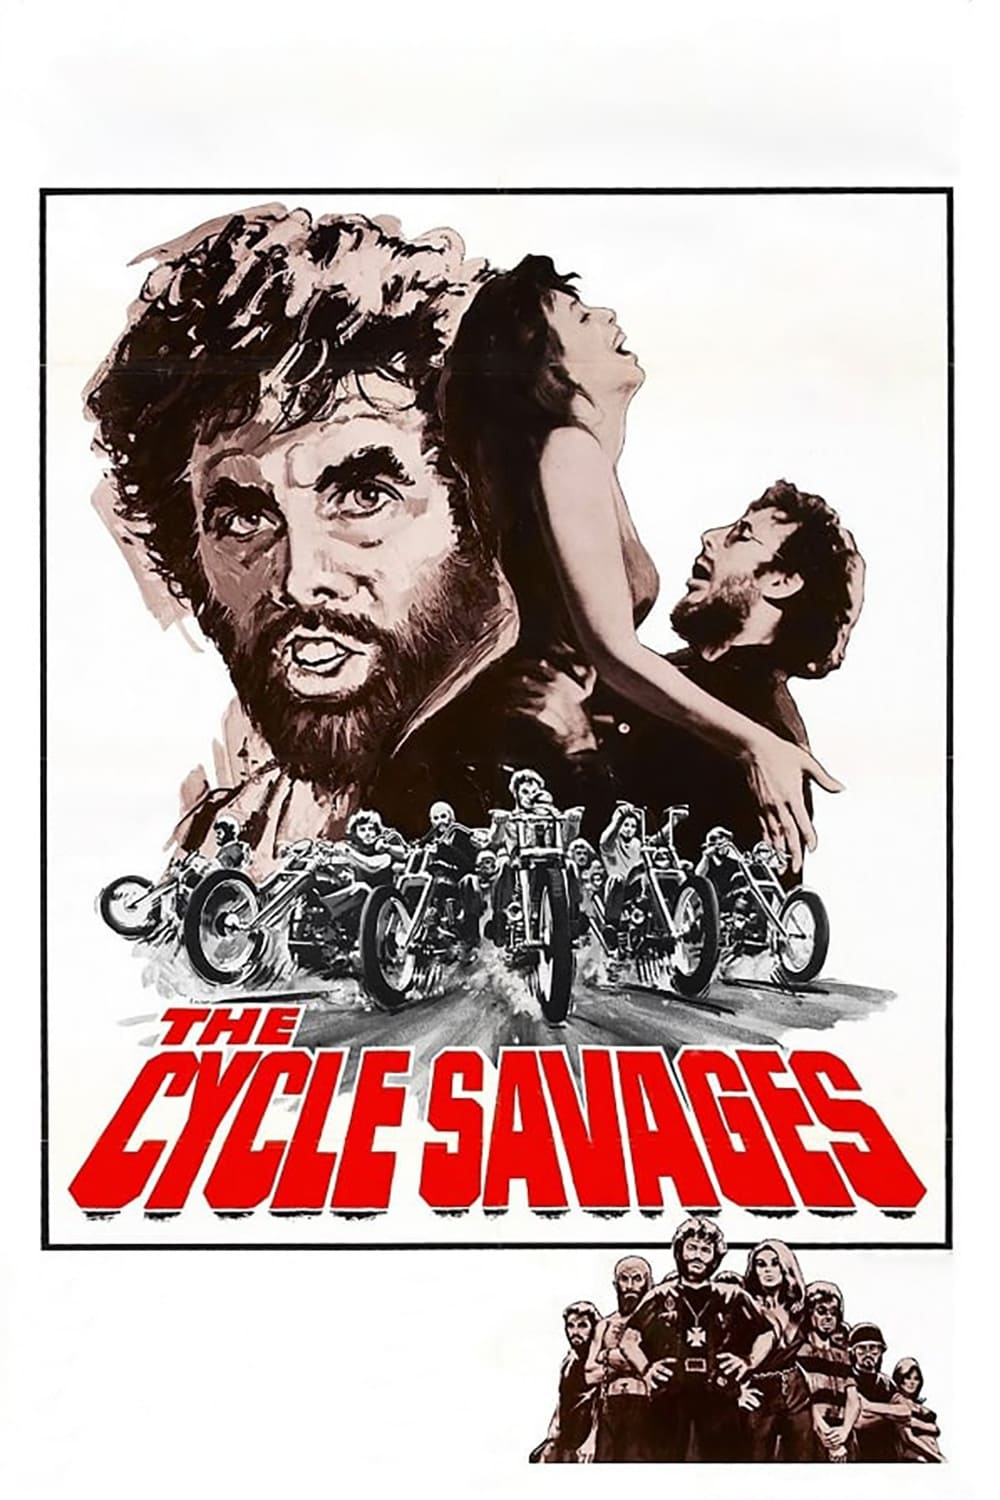 Watch The Cycle Savages Online